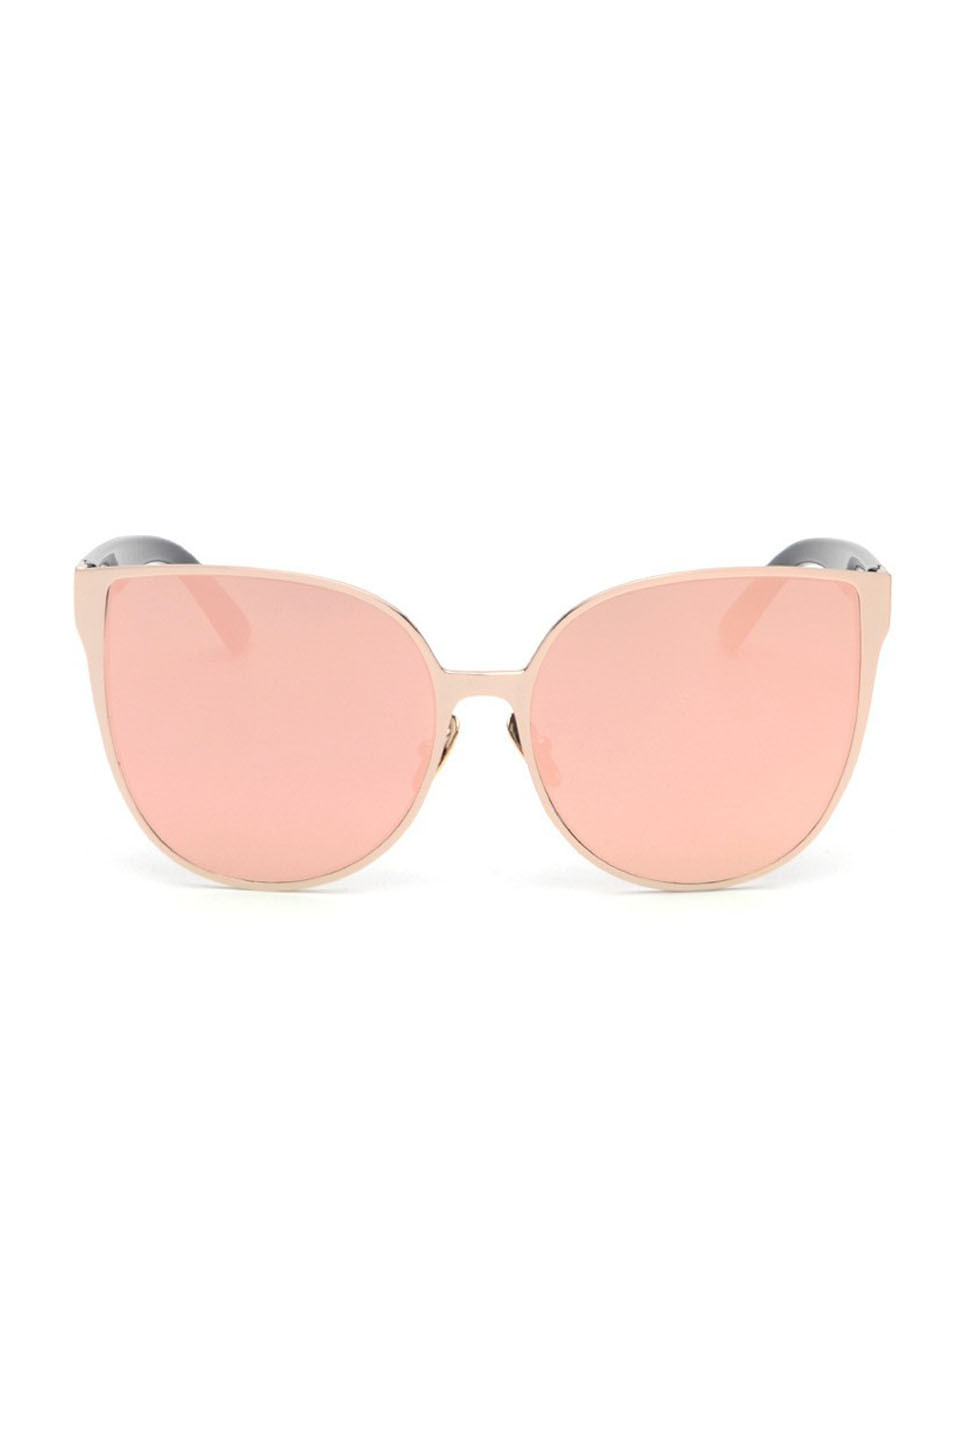 246d0ef187 Sunglasses - Cat Eyes Mirrored Oversized Sunglasses in Rose Gold ...